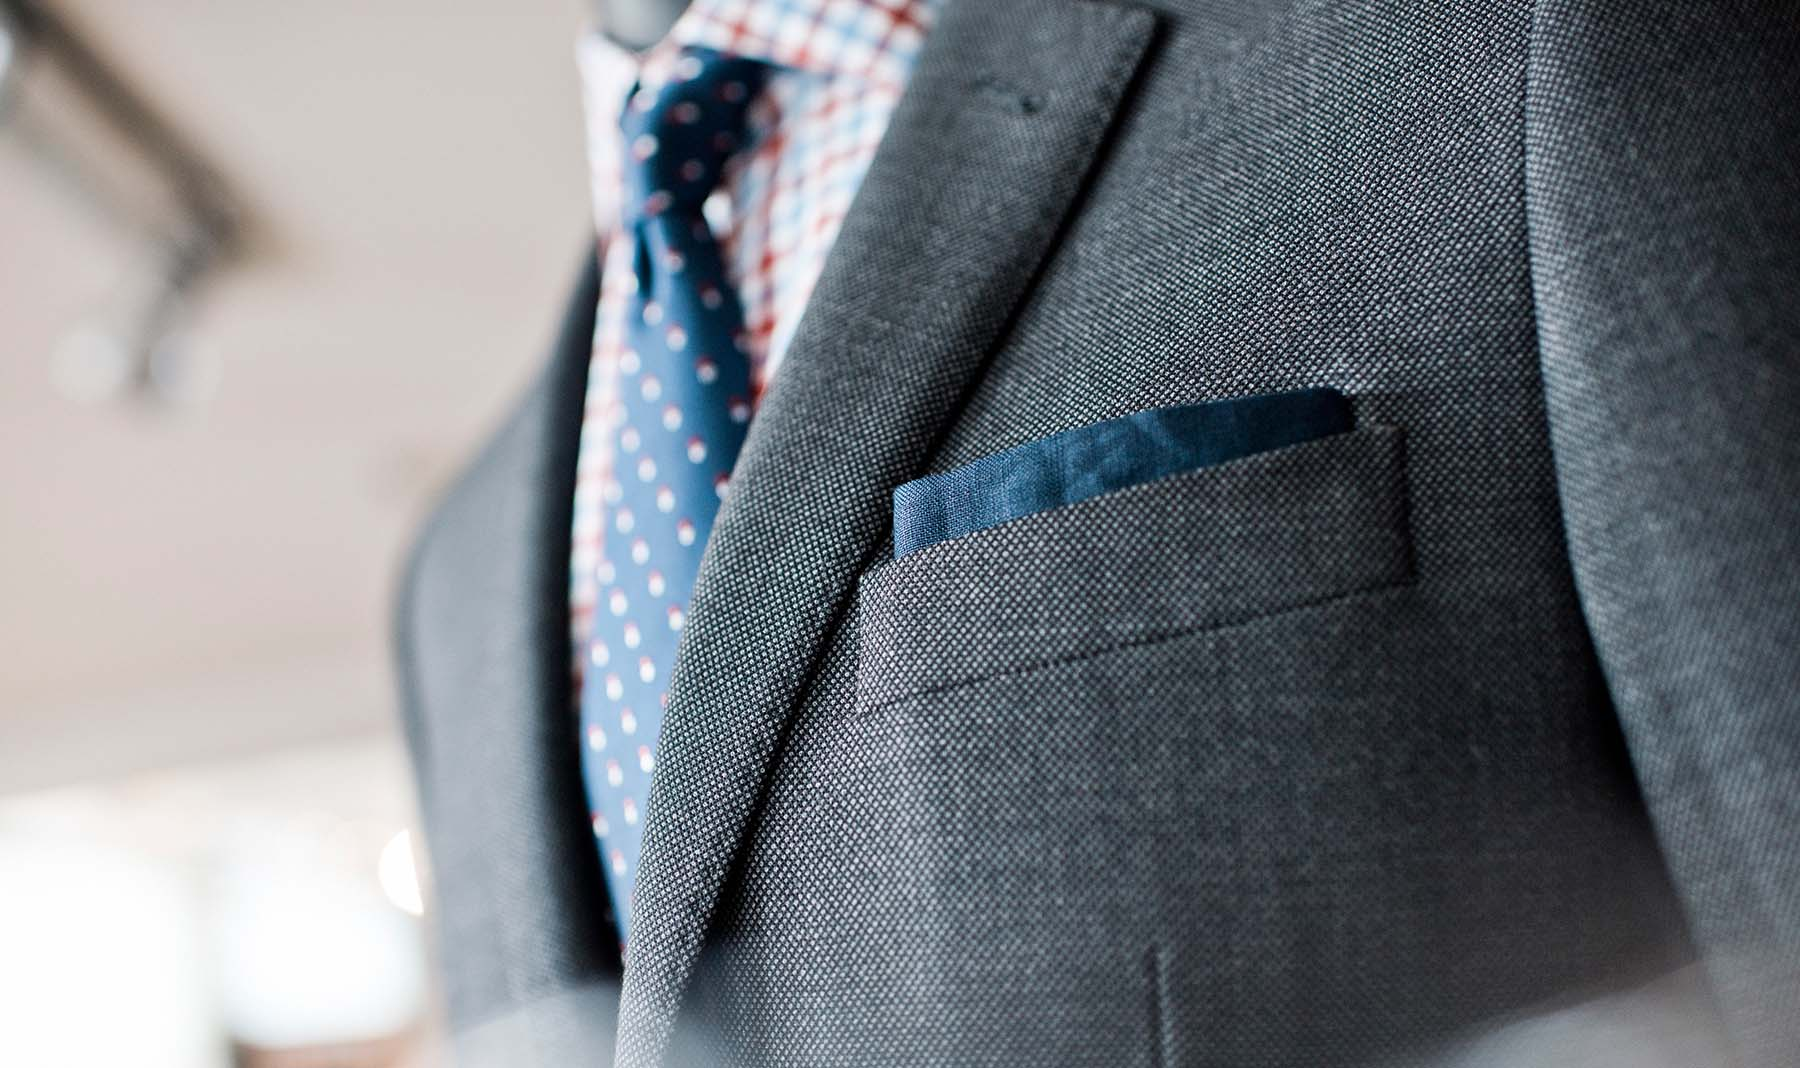 Choose birdseye for a little texture and style.